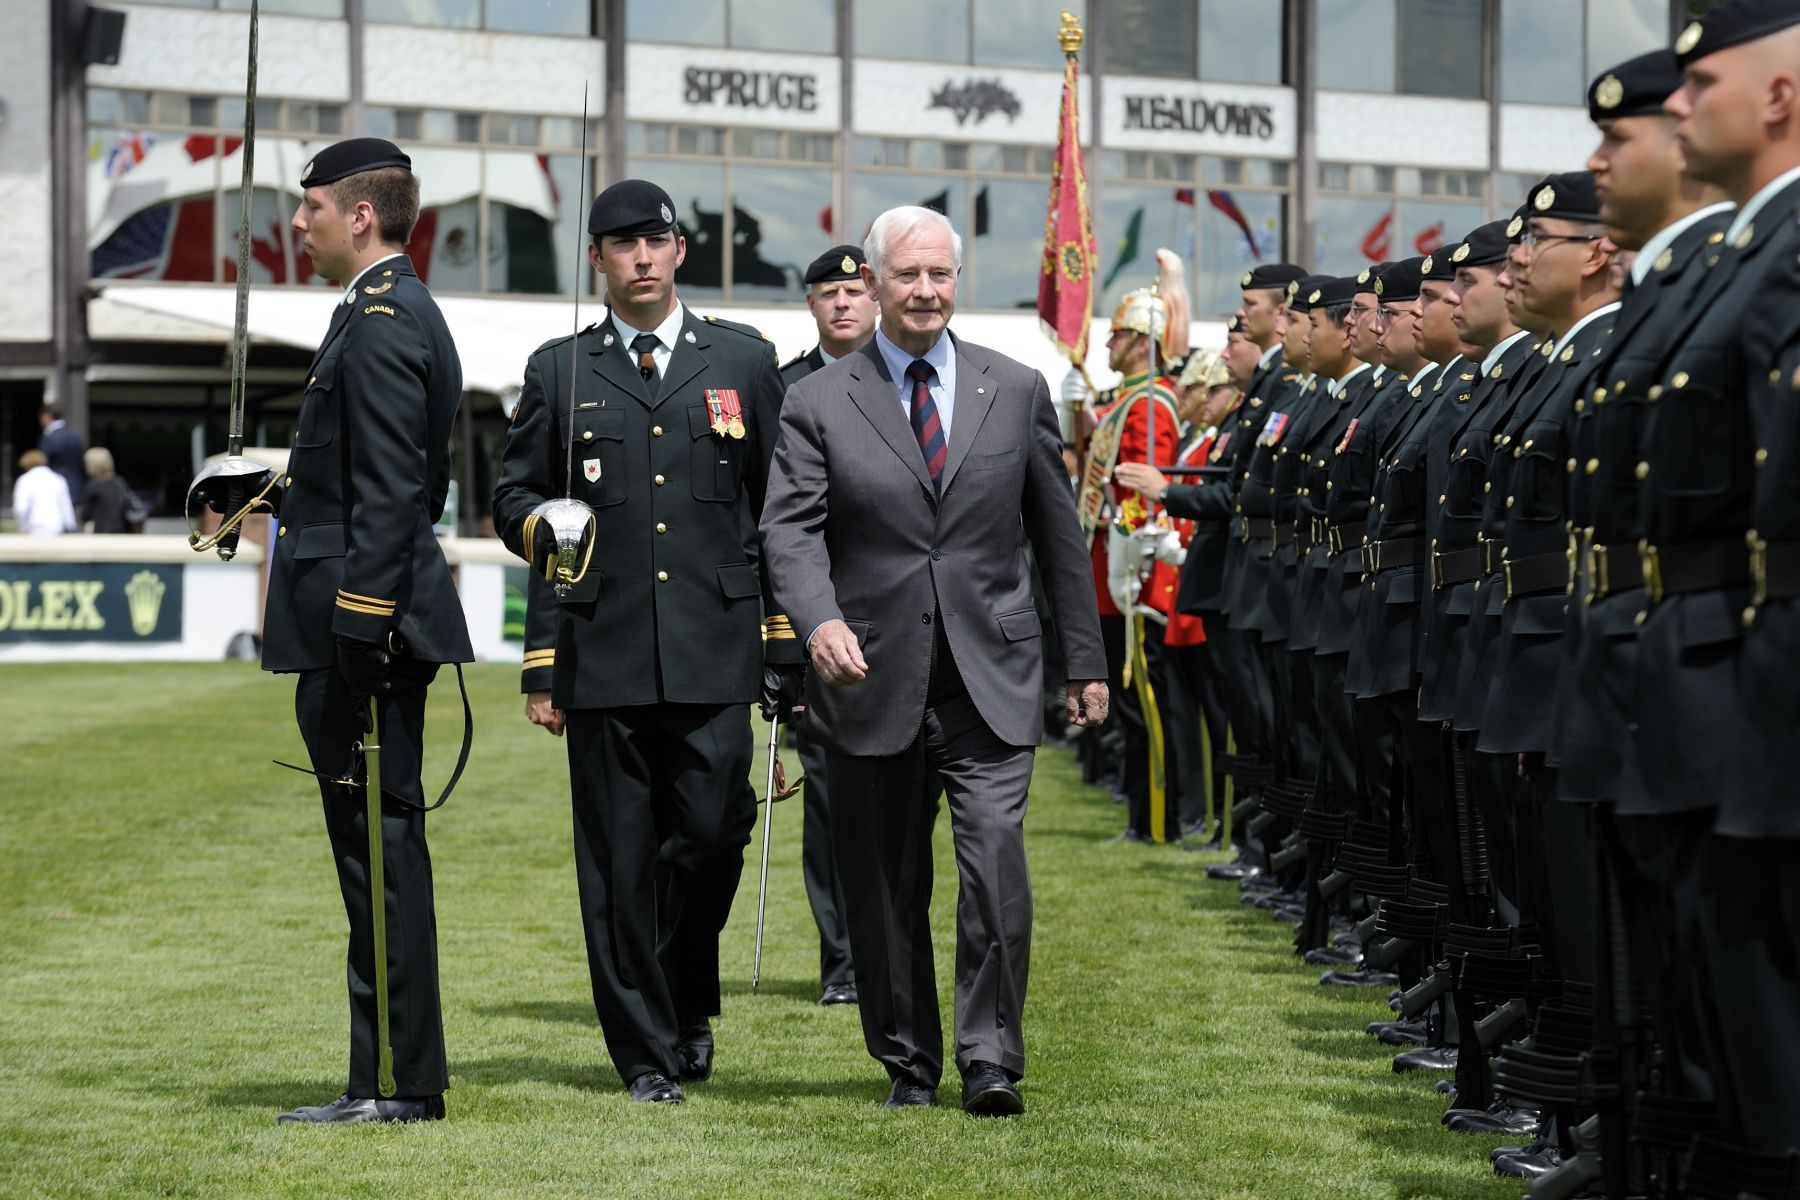 The Governor General also conducted an inspection of a guard of honour.